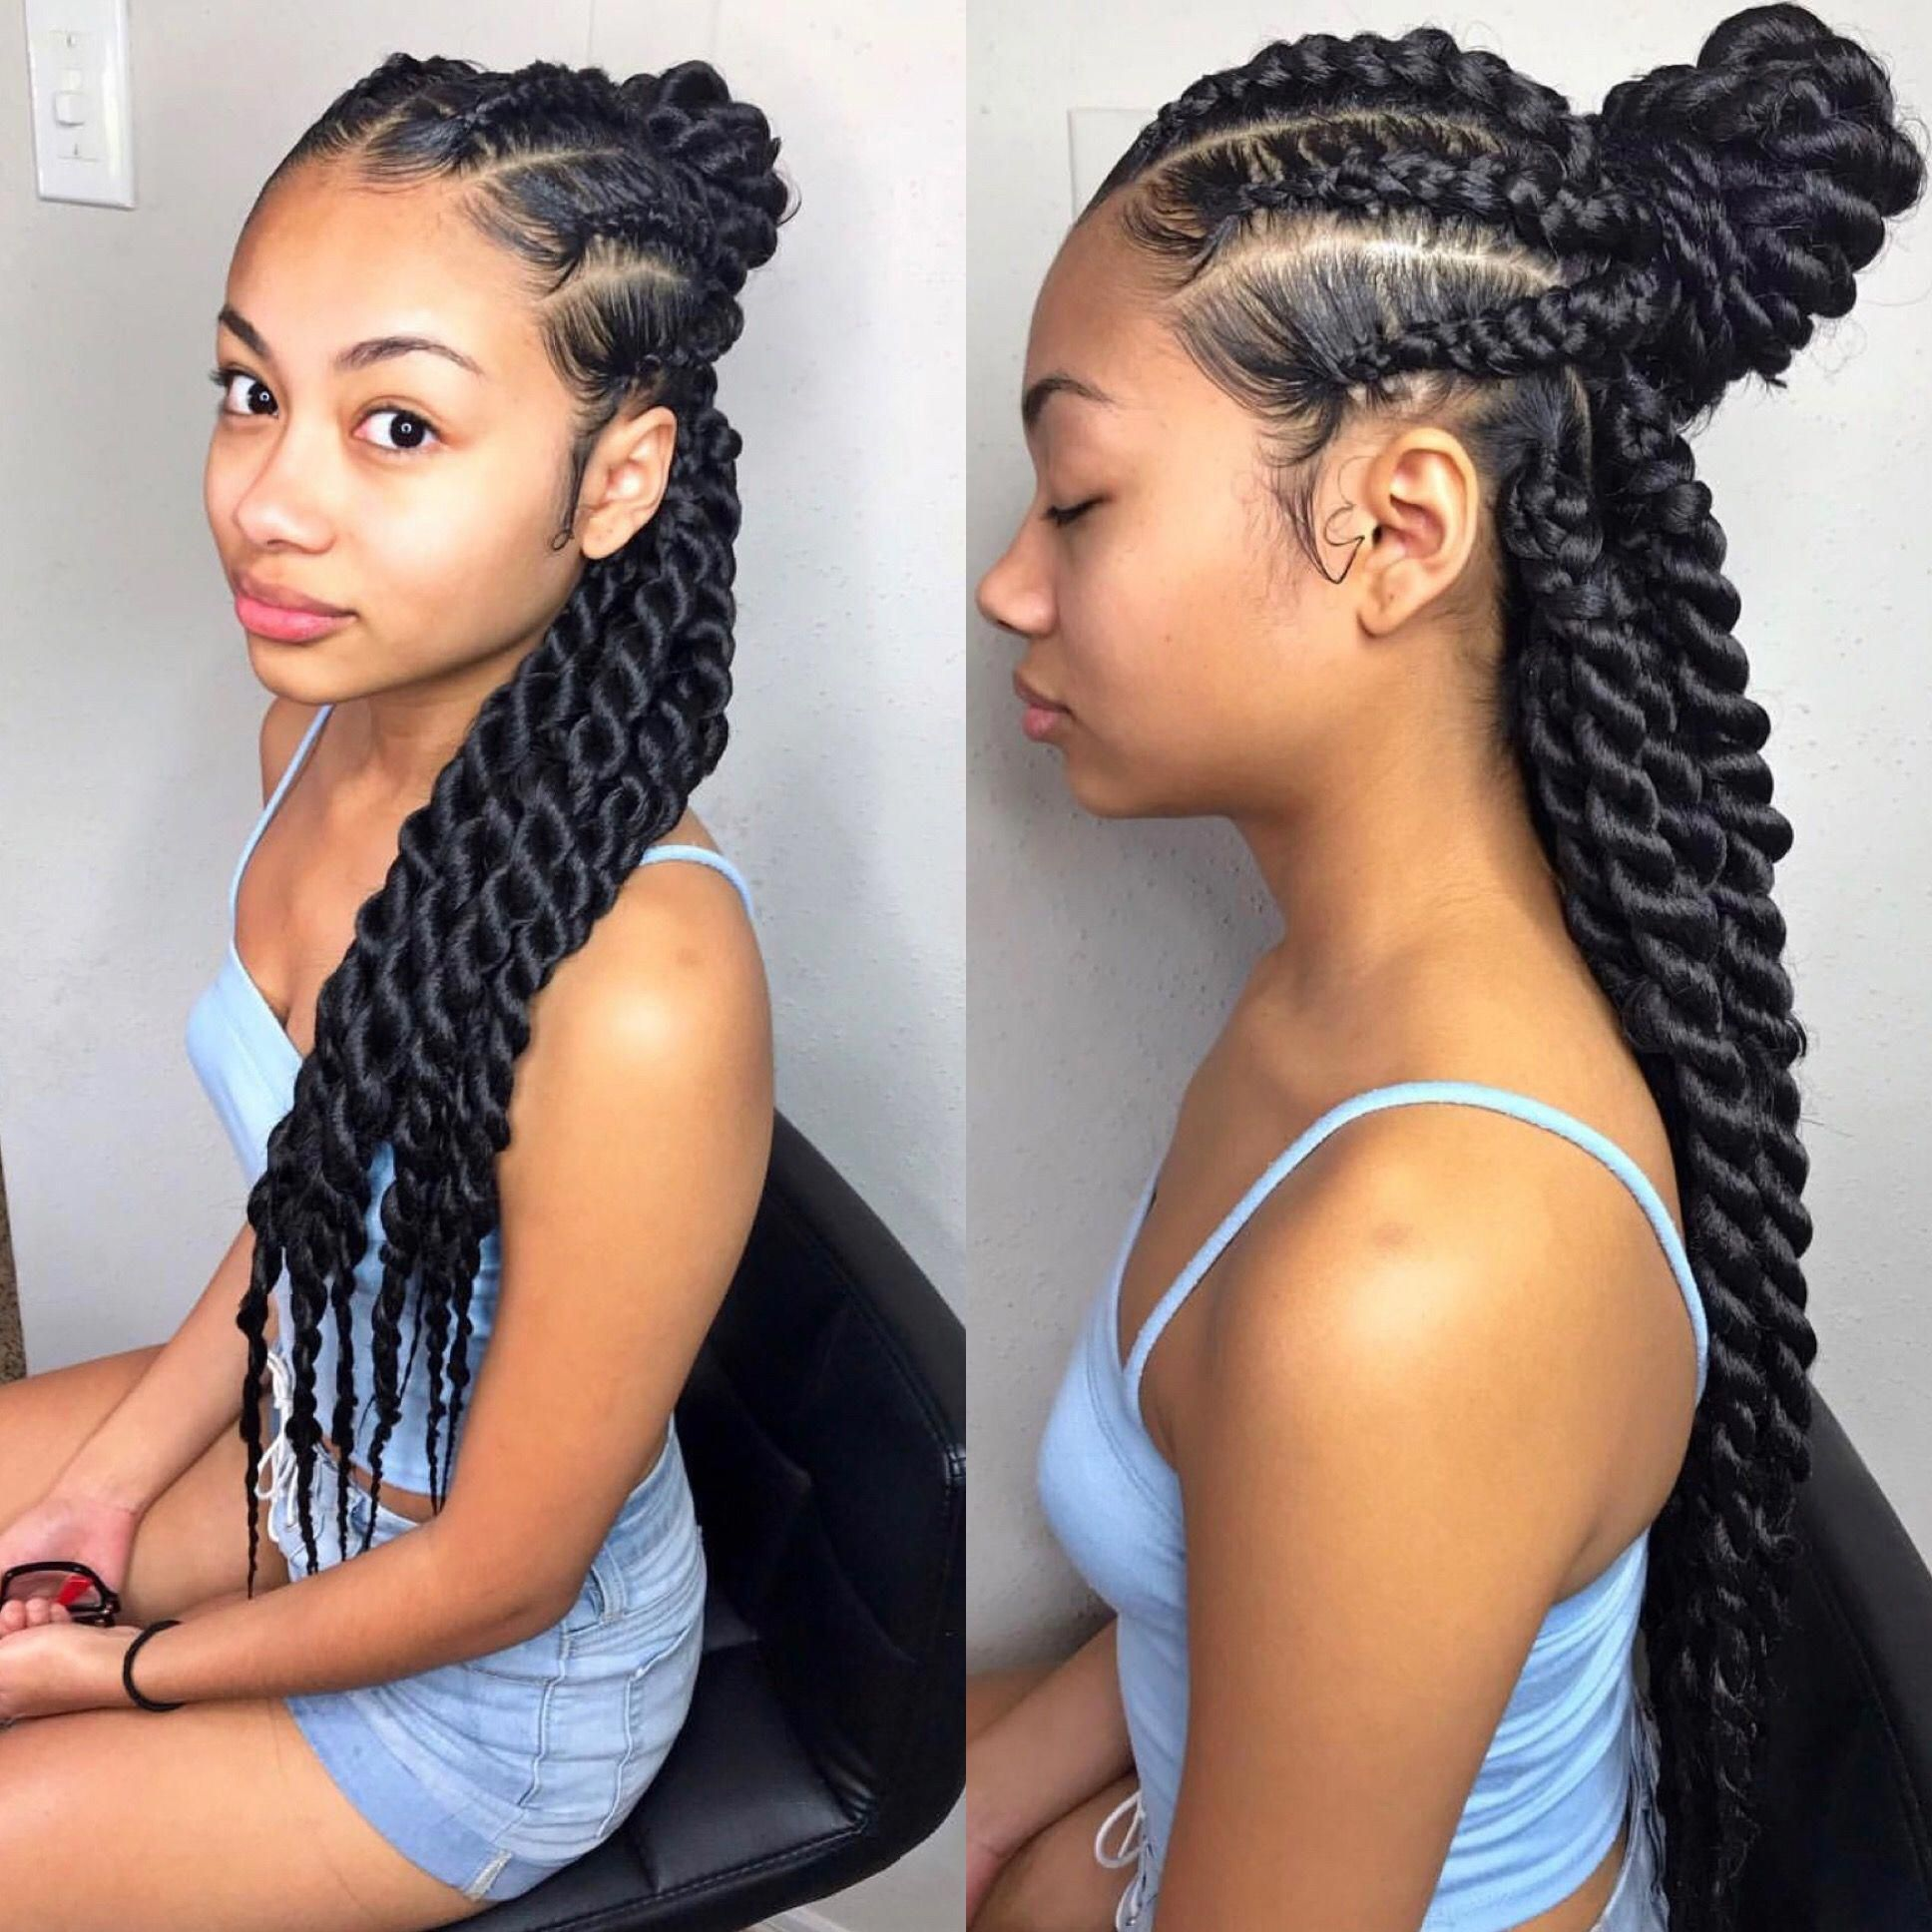 these half braided hairstyles really are trendy